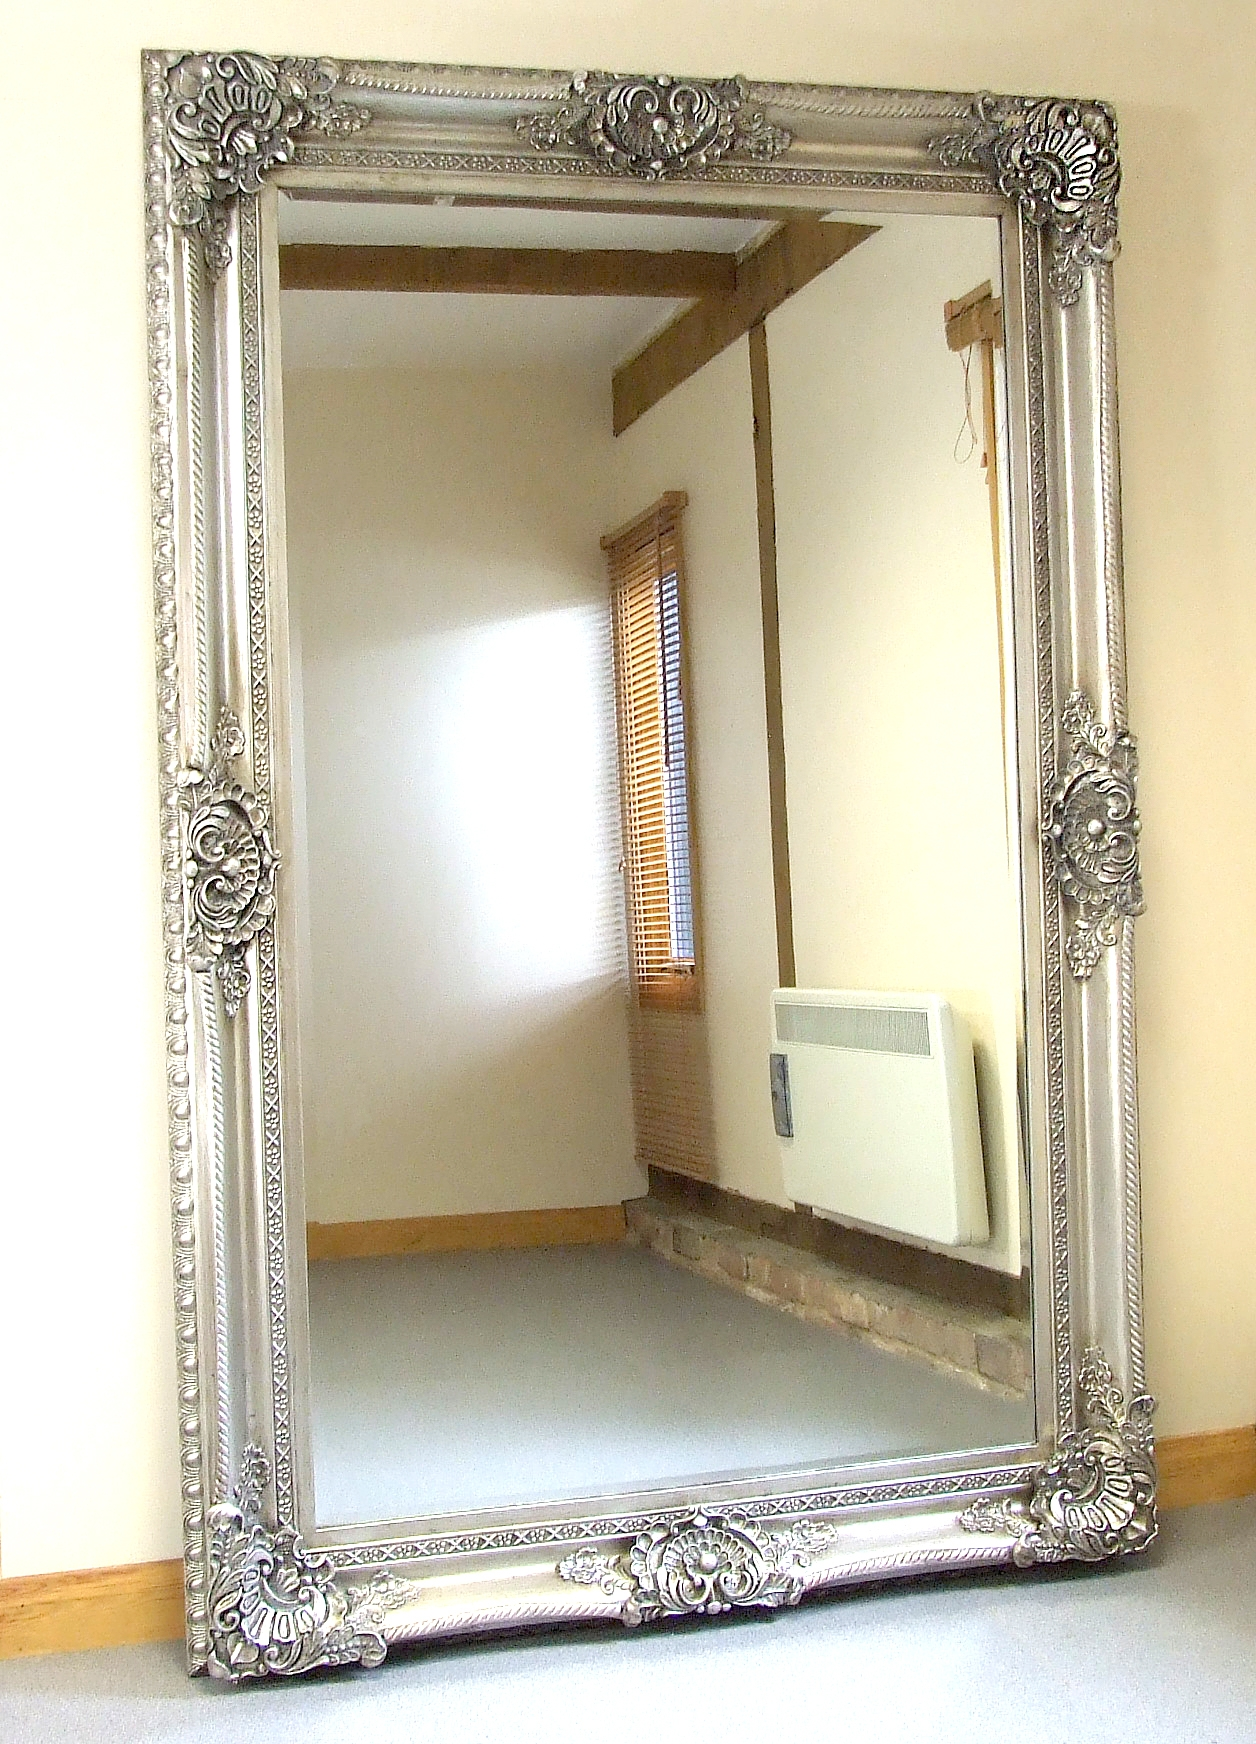 Flooring Impressive Ornate Floor Mirror Photo Designngth Intended For Oversized Mirrors For Sale (Image 10 of 15)